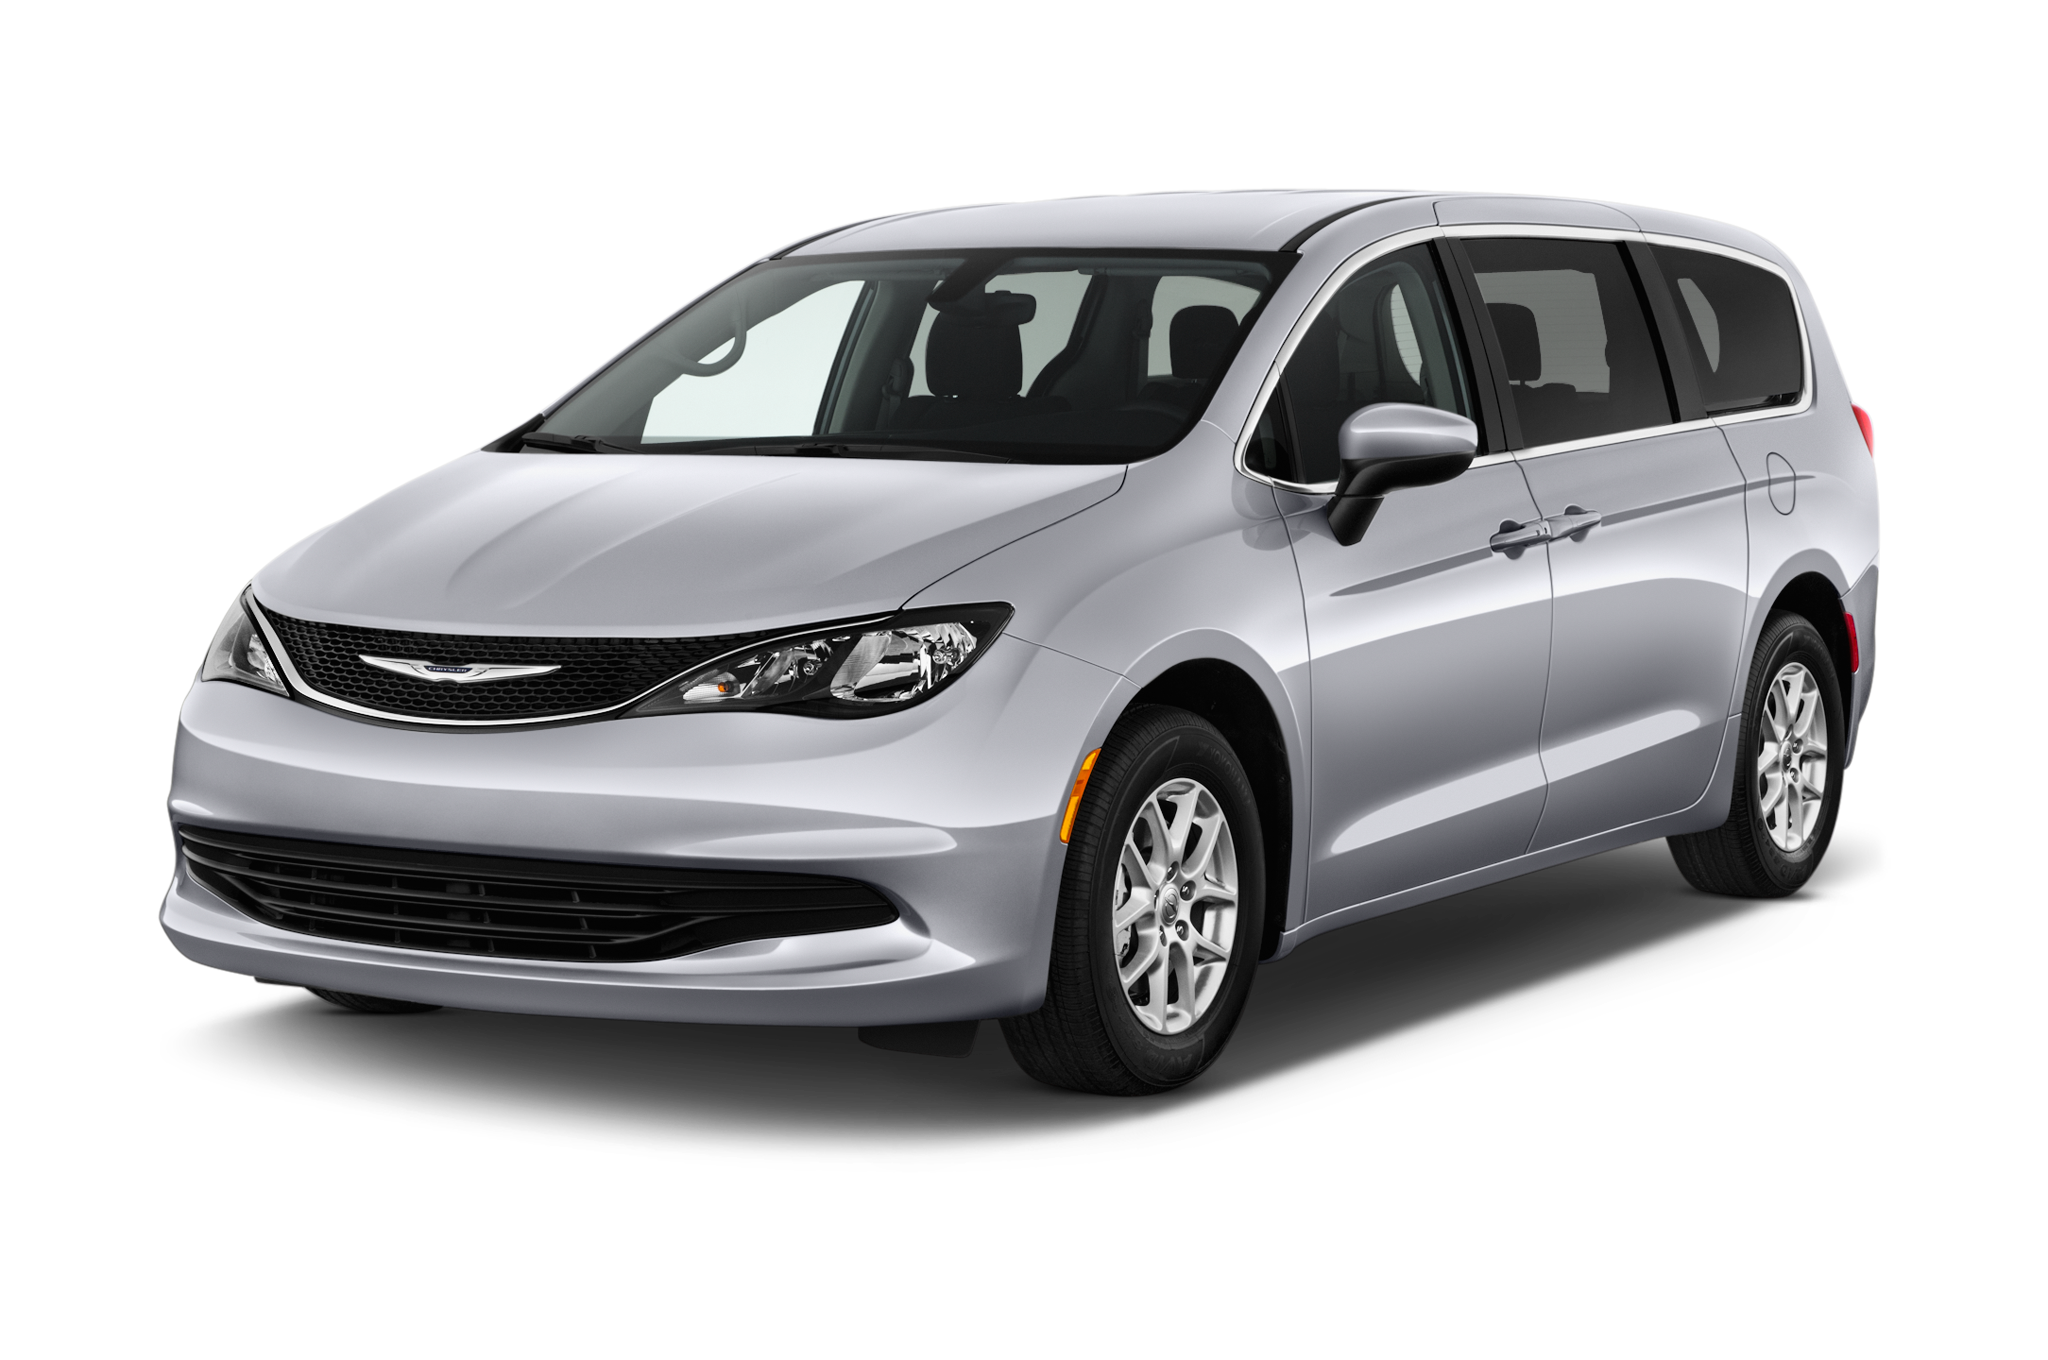 Pictures of 2017 chrysler pacifica